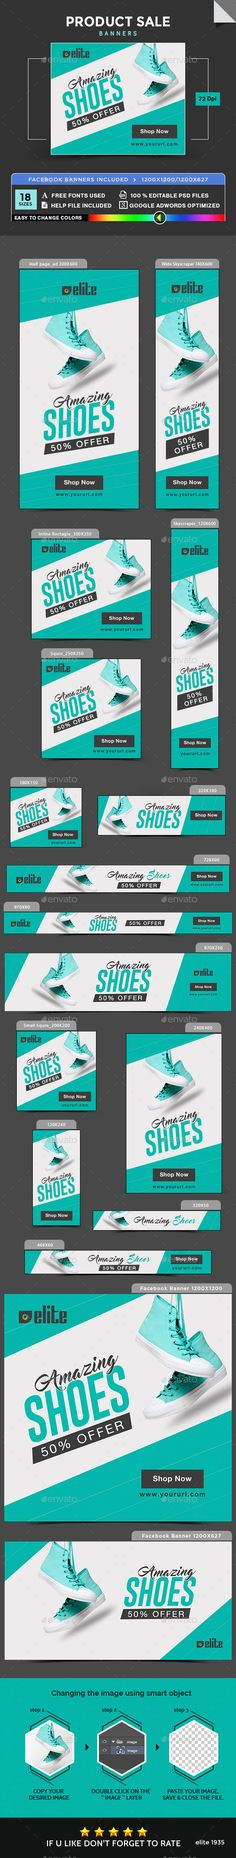 Product Sale Banners by doto Promote your Products and services with this great looking Banner Set. Edm Template, Banner Template, Website Template, Templates, Web Design, Web Banner Design, Web Banners, Flat Design, Banner Sample